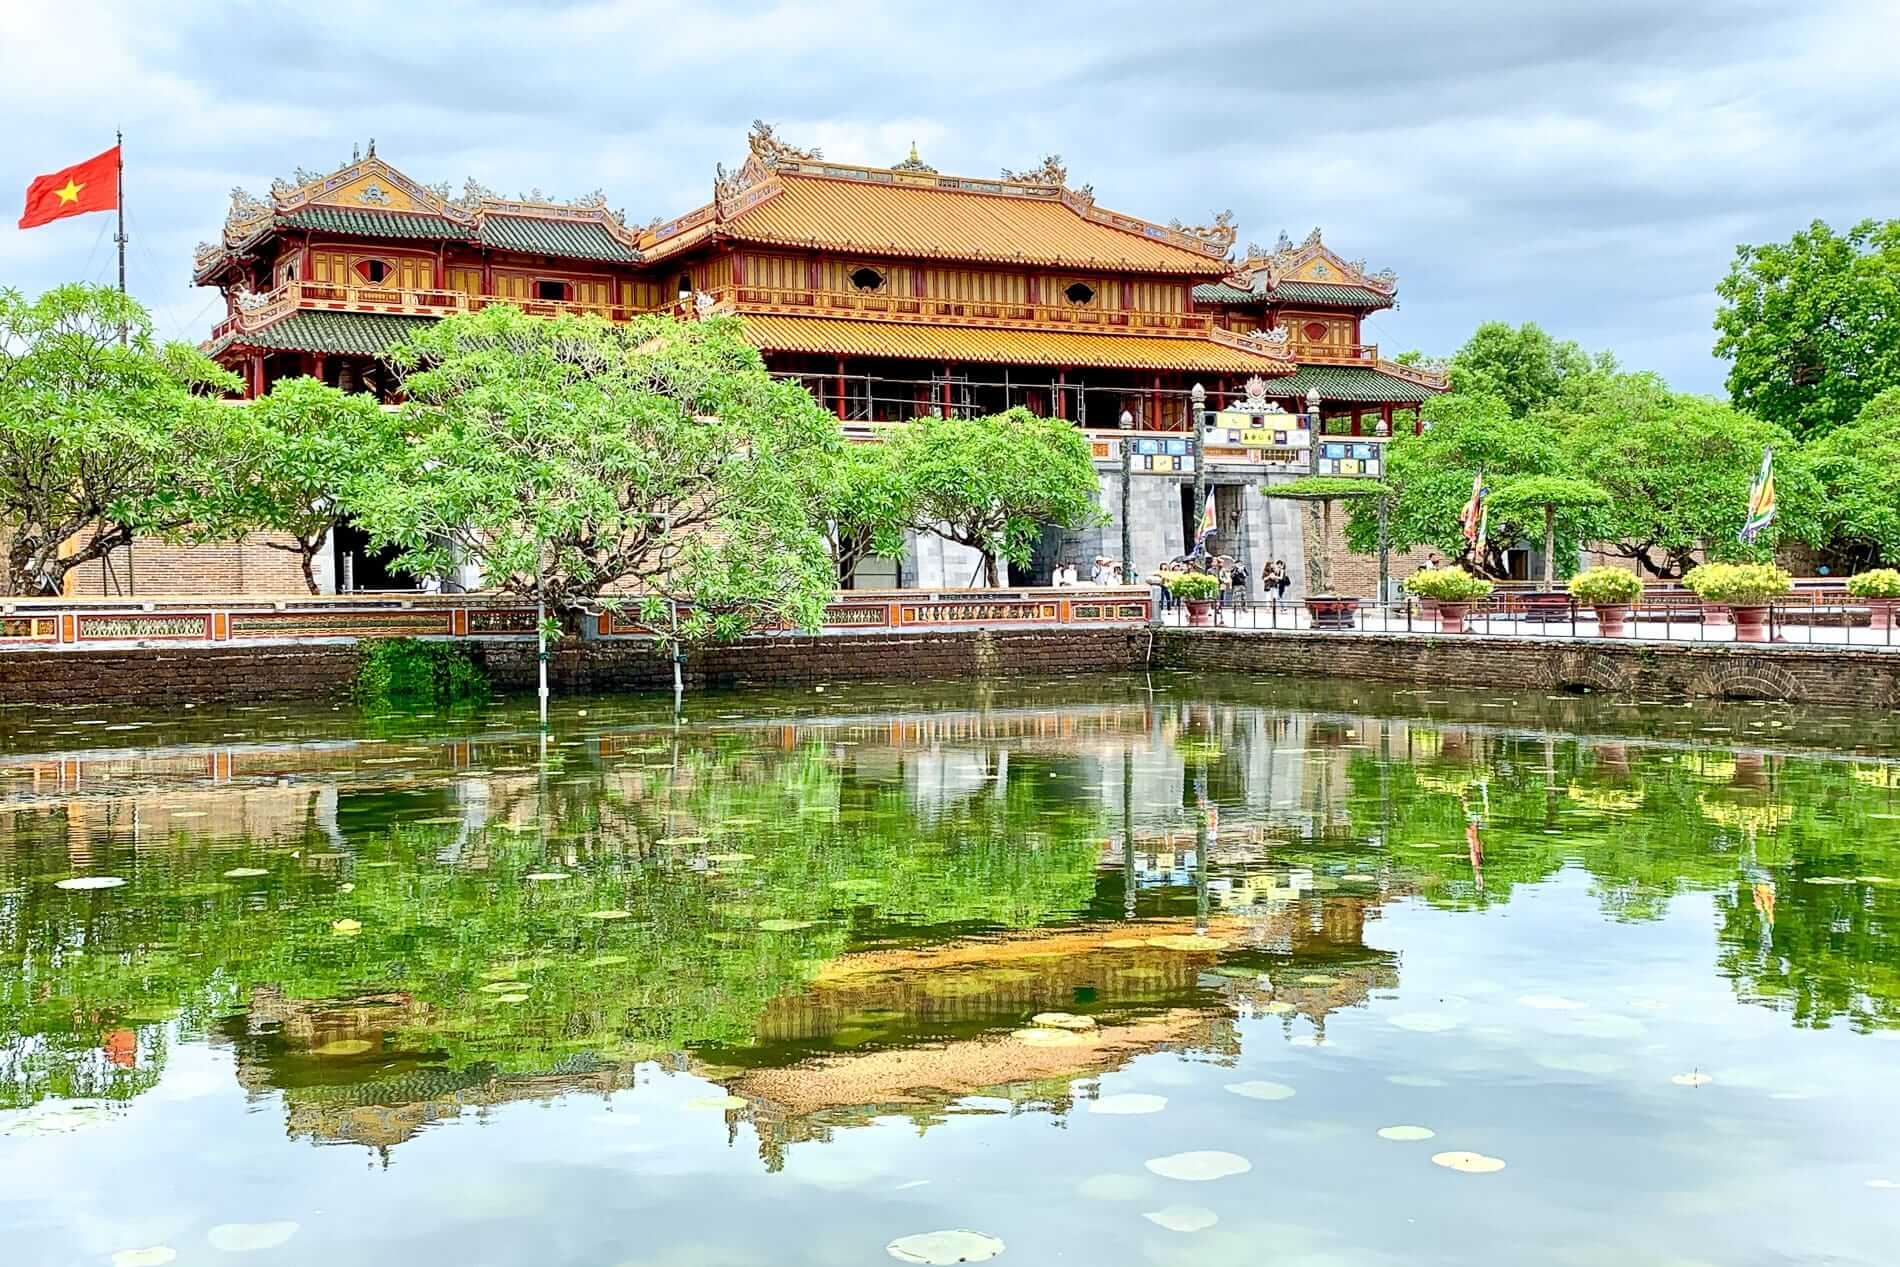 Hue Citadel reflected in water lily ponds